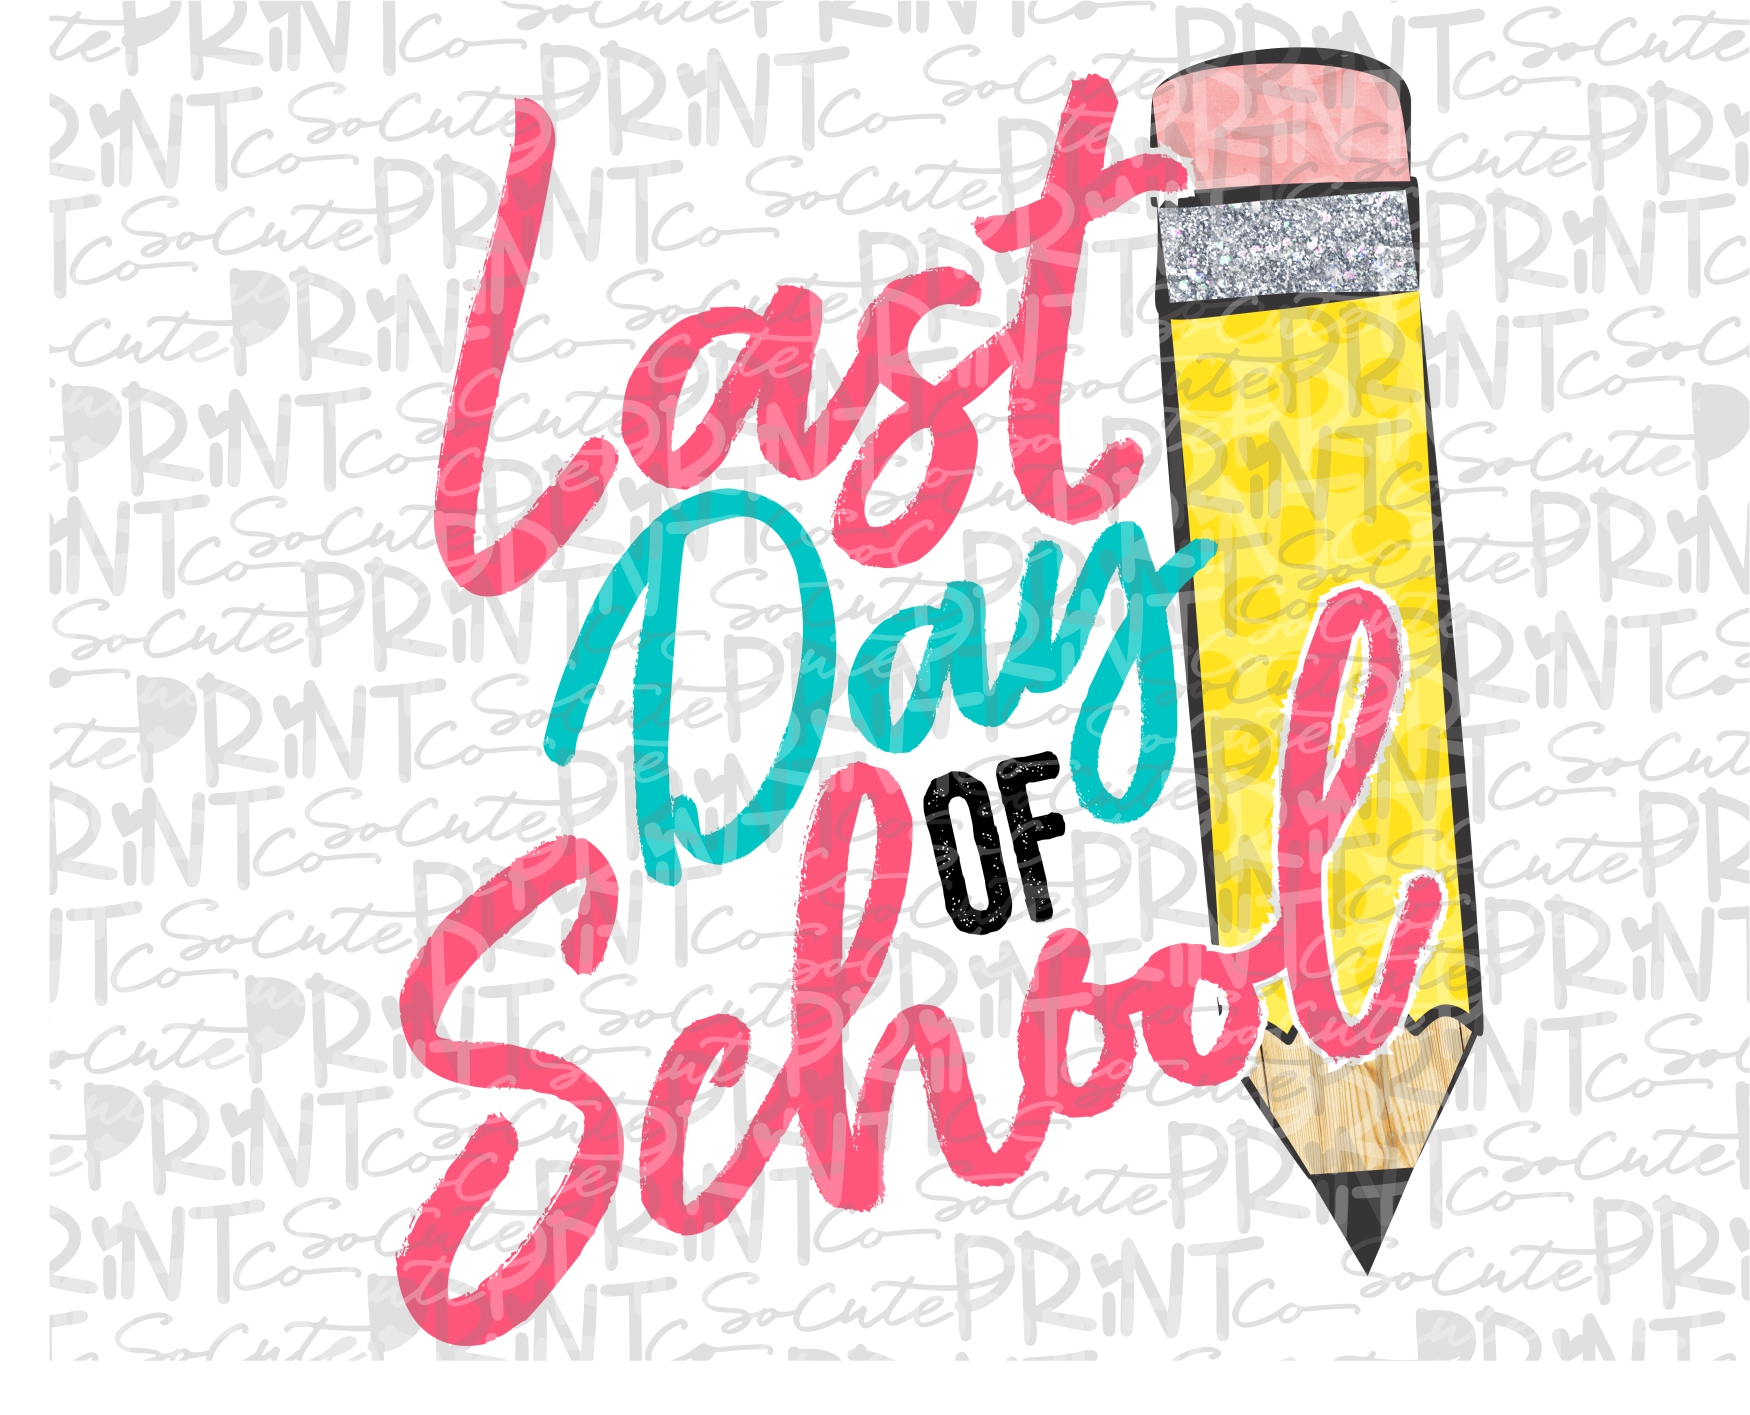 Last day of school pencil pink 19 Printable PNG 1750x1415